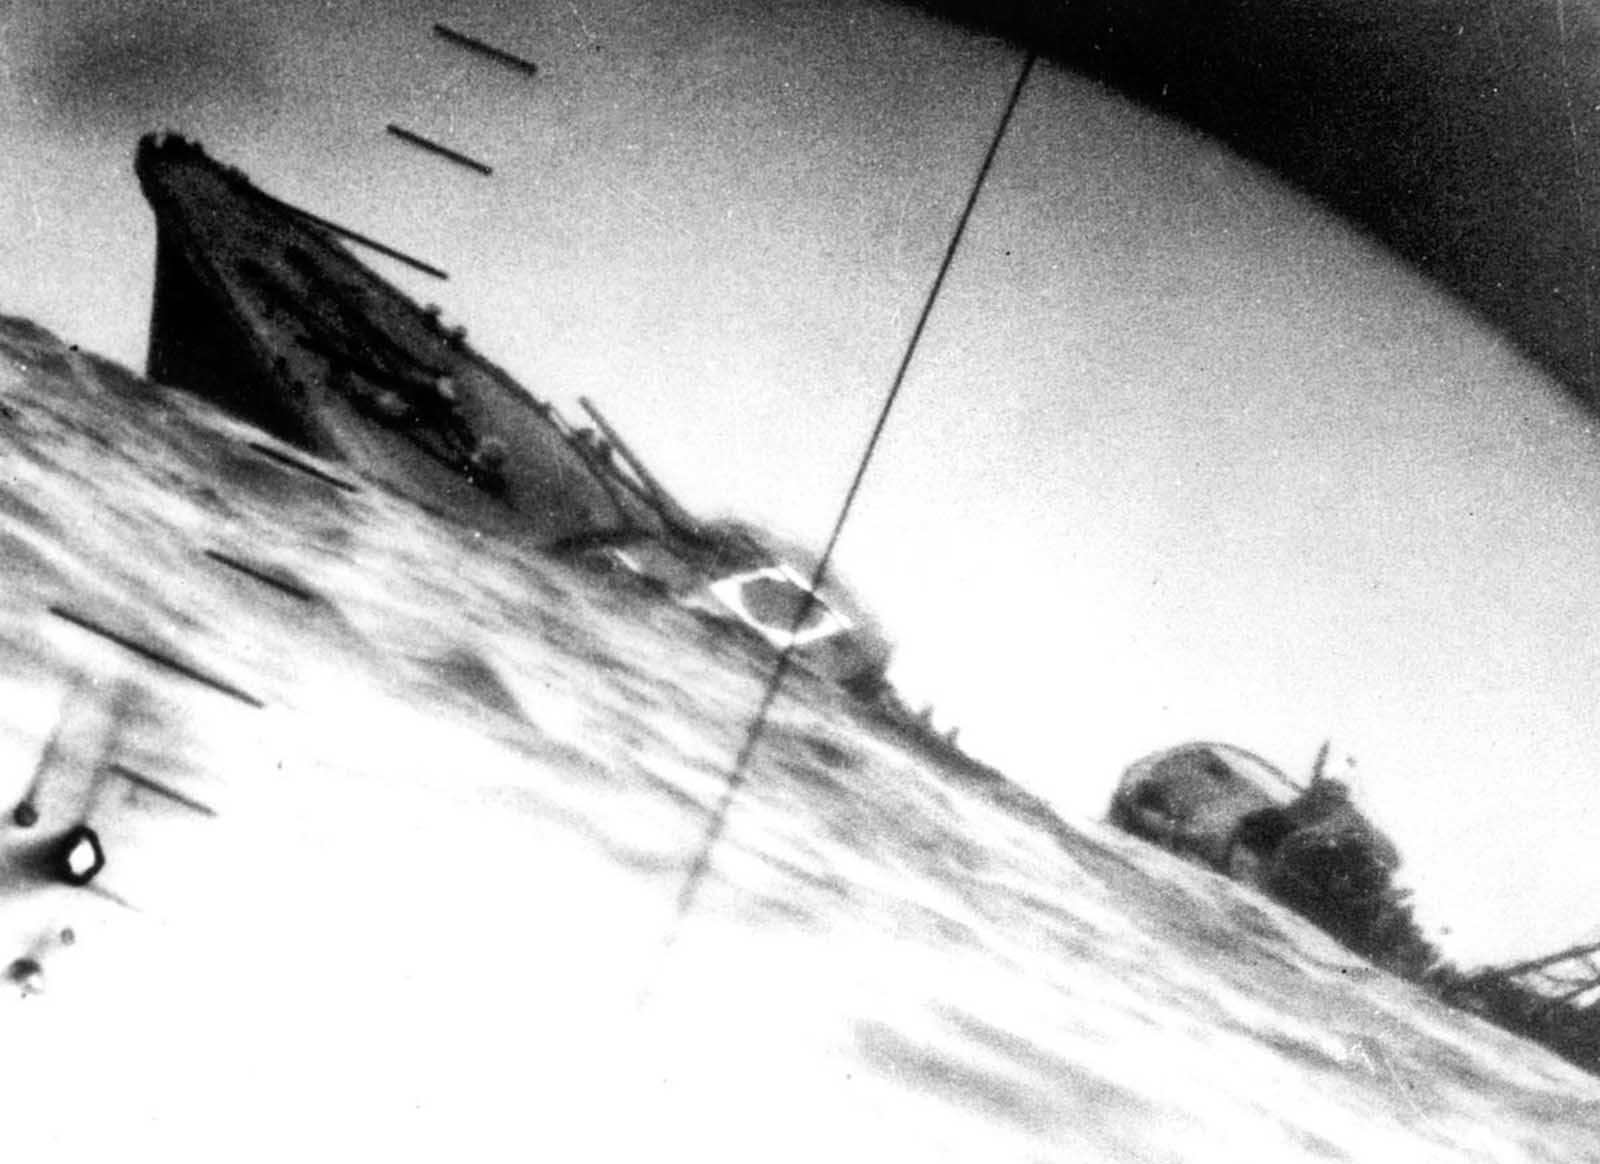 Torpedoed Japanese destroyer Yamakaze, photographed through periscope of USS Nautilus, 25 June 1942. The Yamakaze sank within five minutes of being struck, there were no survivors.